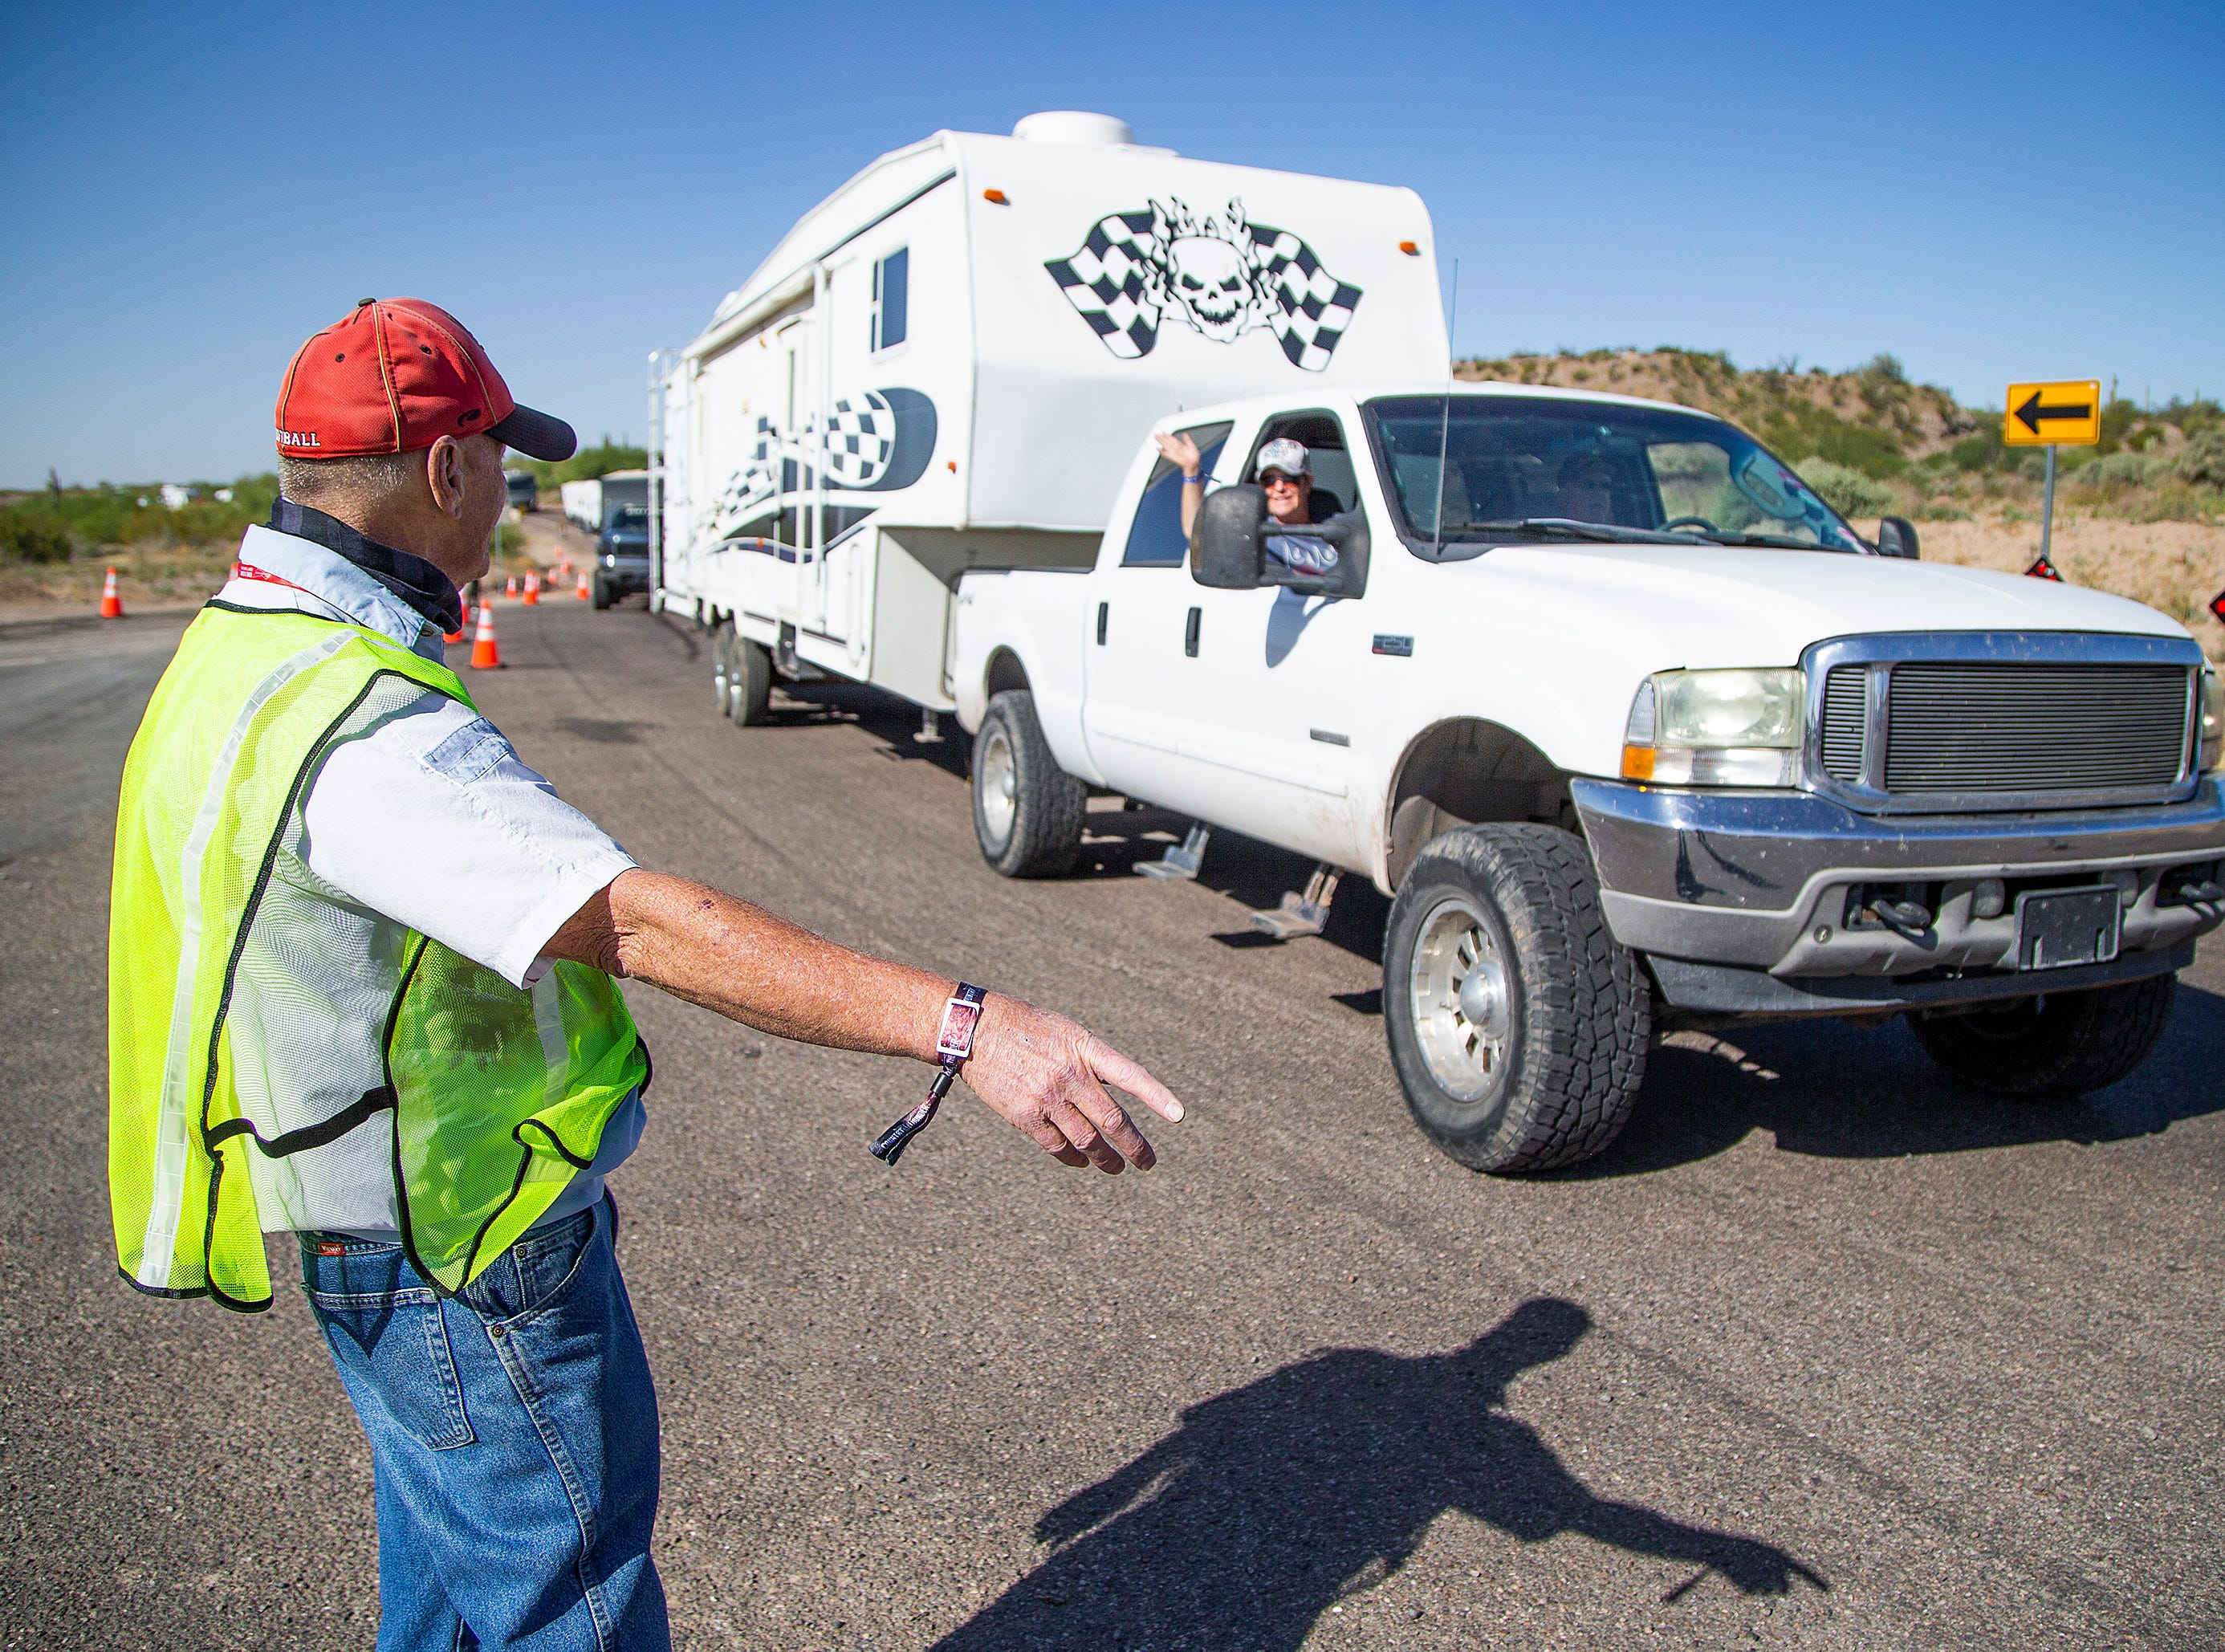 Traffic guide Jack Vaughn directs hundreds of vehicles, including campers and trailers, entering the Country Thunder Arizona 2019 music festival April 10, 2019.